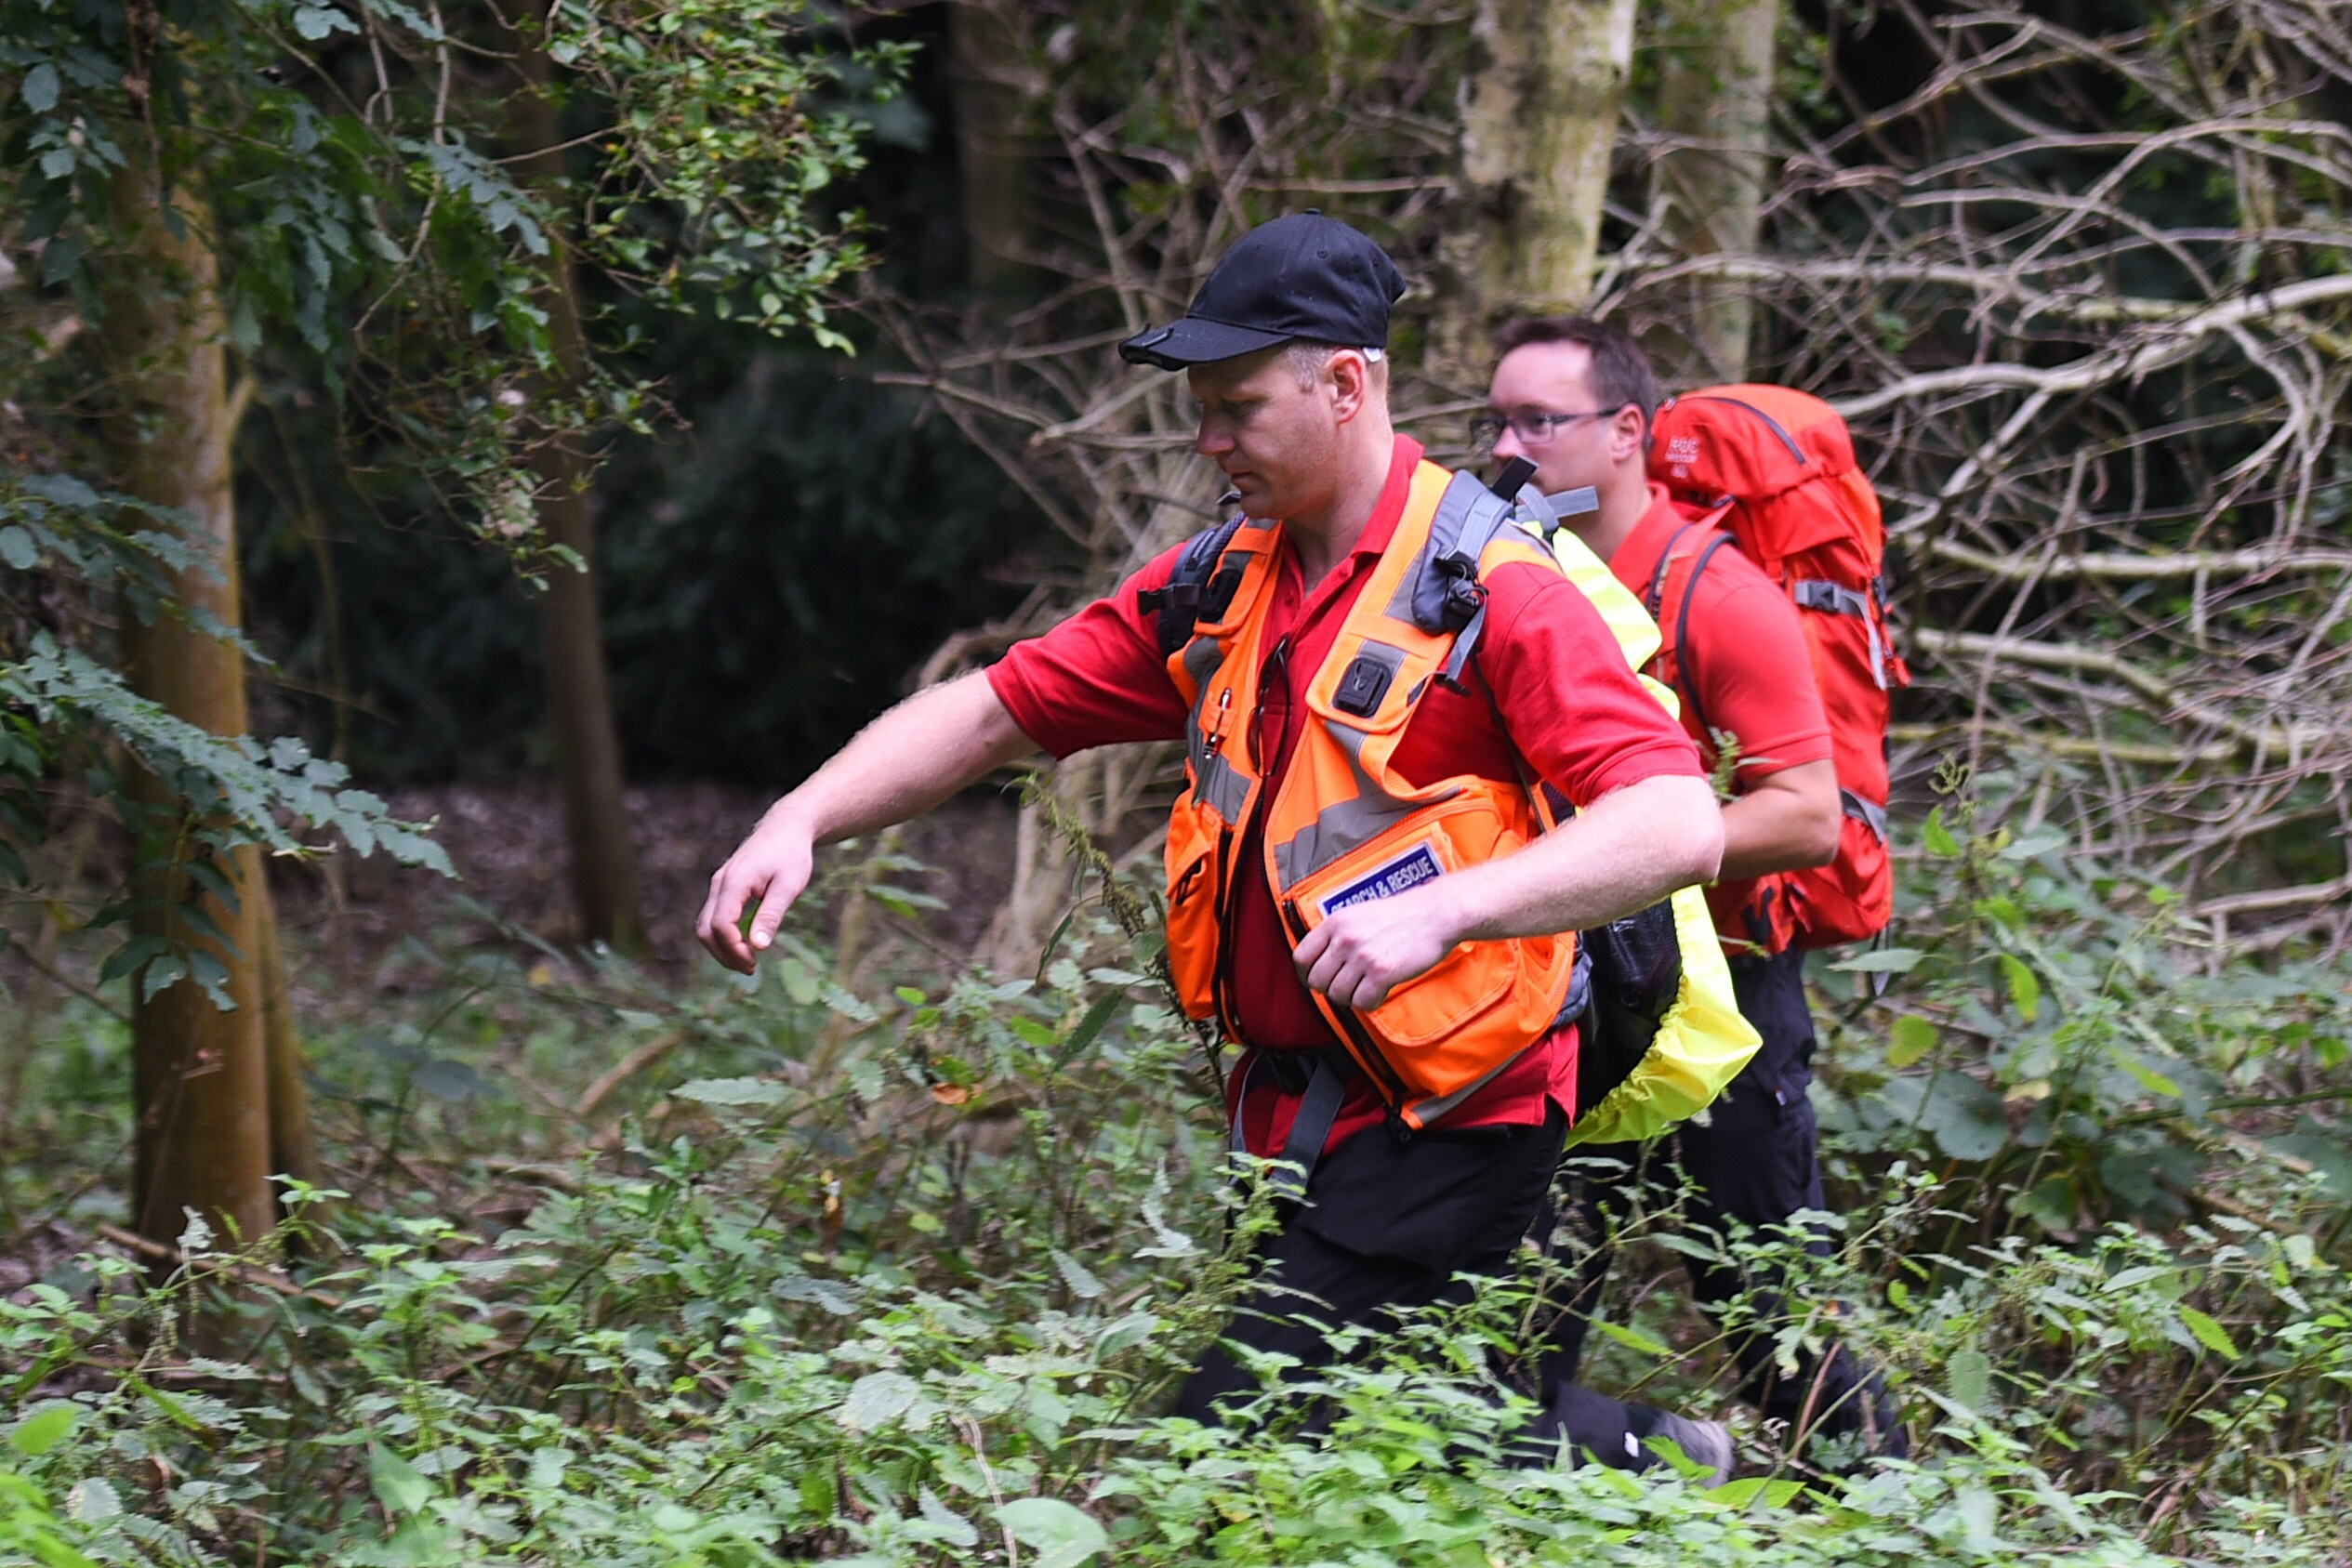 Teams of police, search and rescue and RAF personnel trying to find Corrie McKeague near Ampton village in Suffolk.